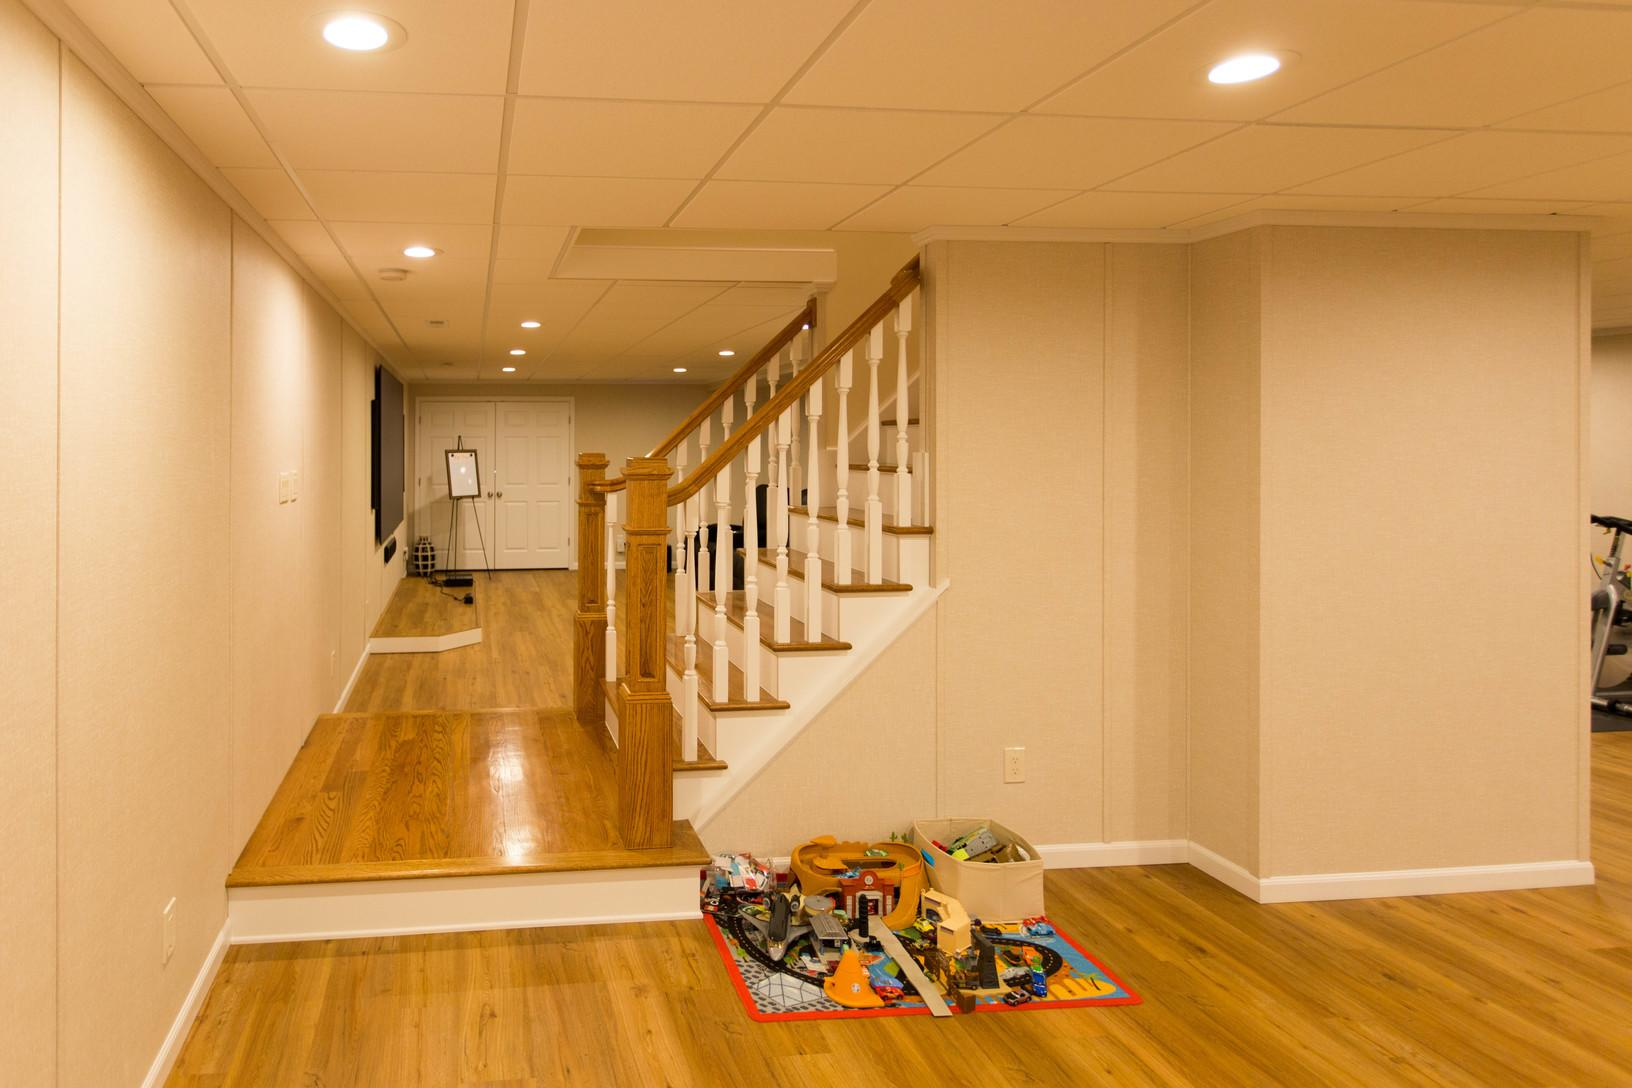 Basement Staircase & Landing - AFTER